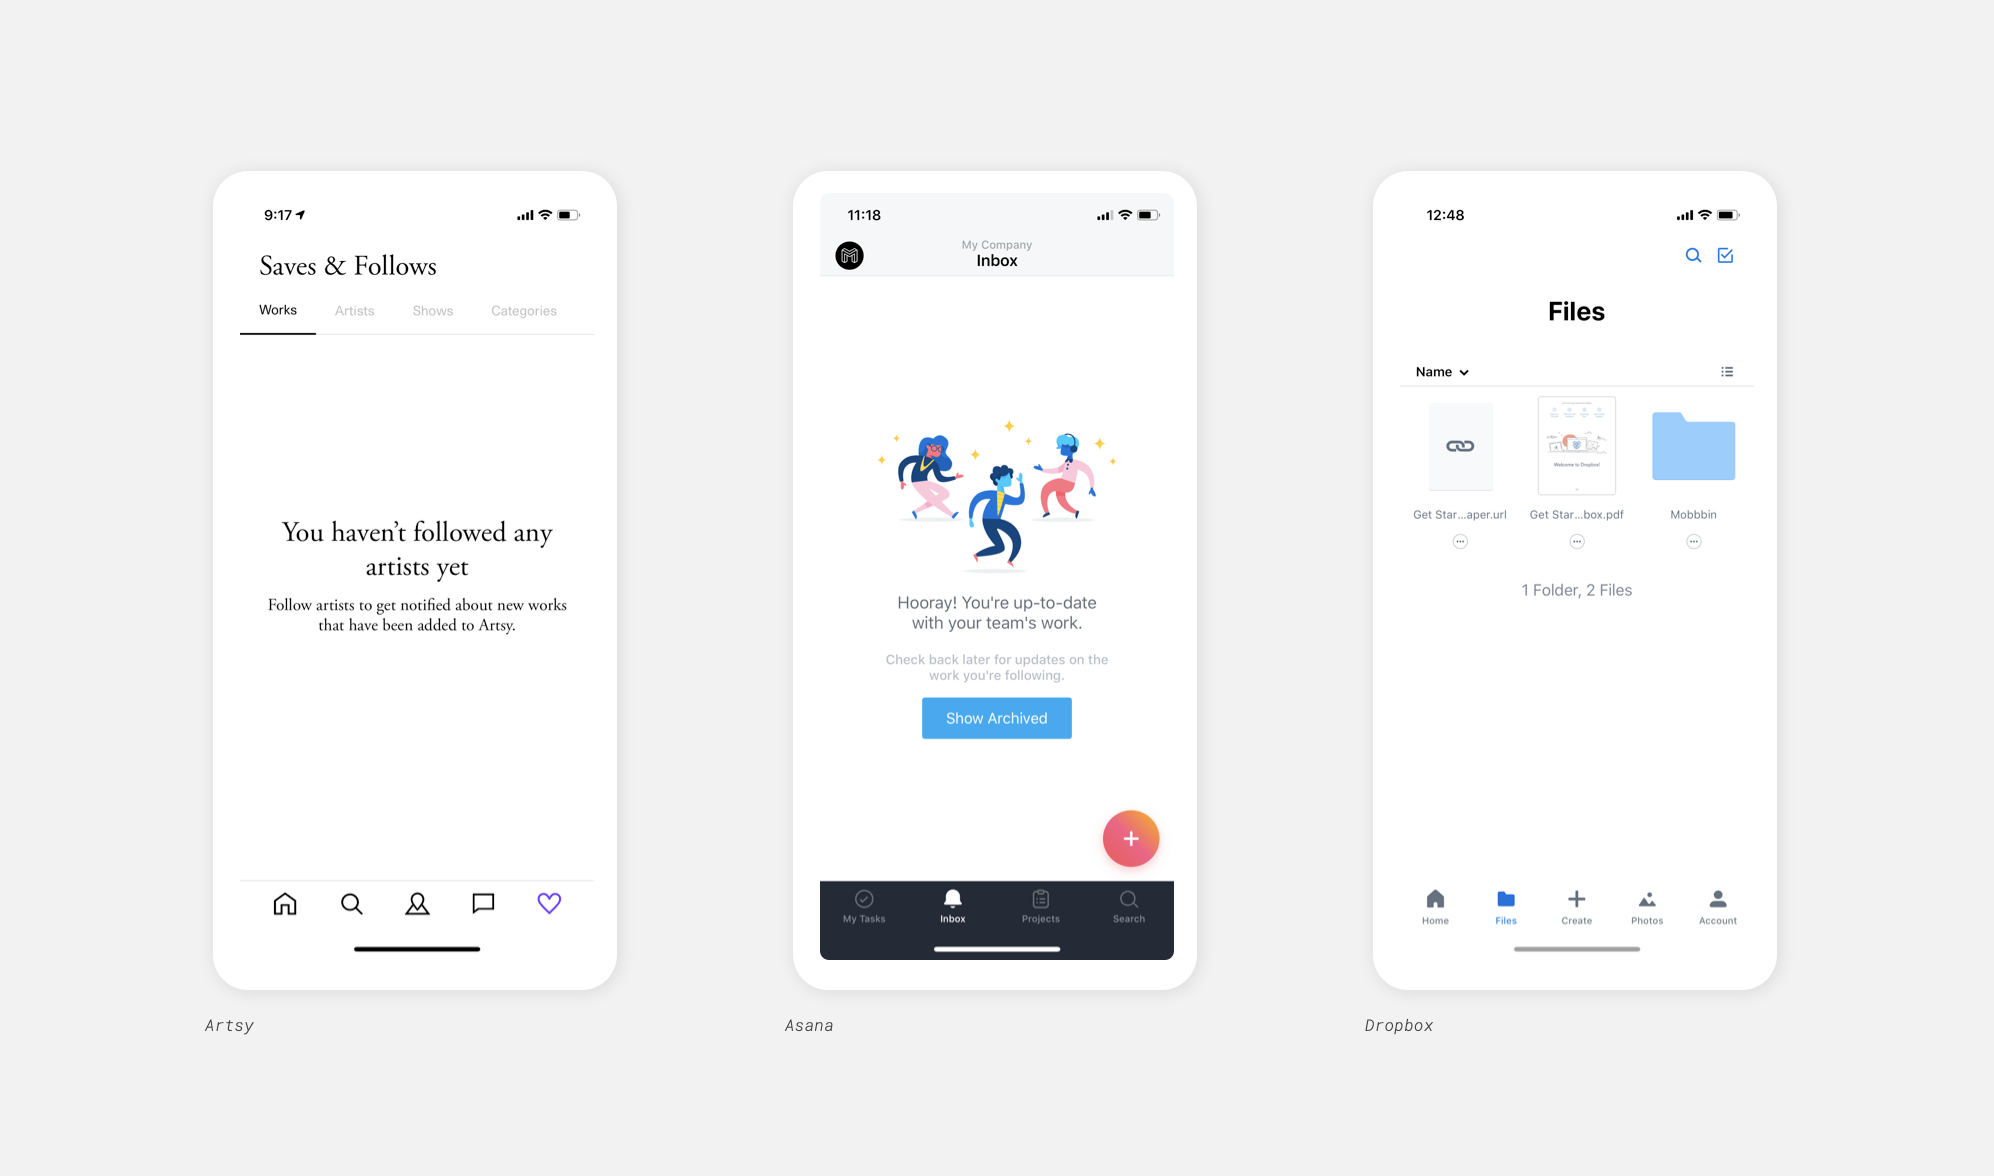 State of mobile app design 2019